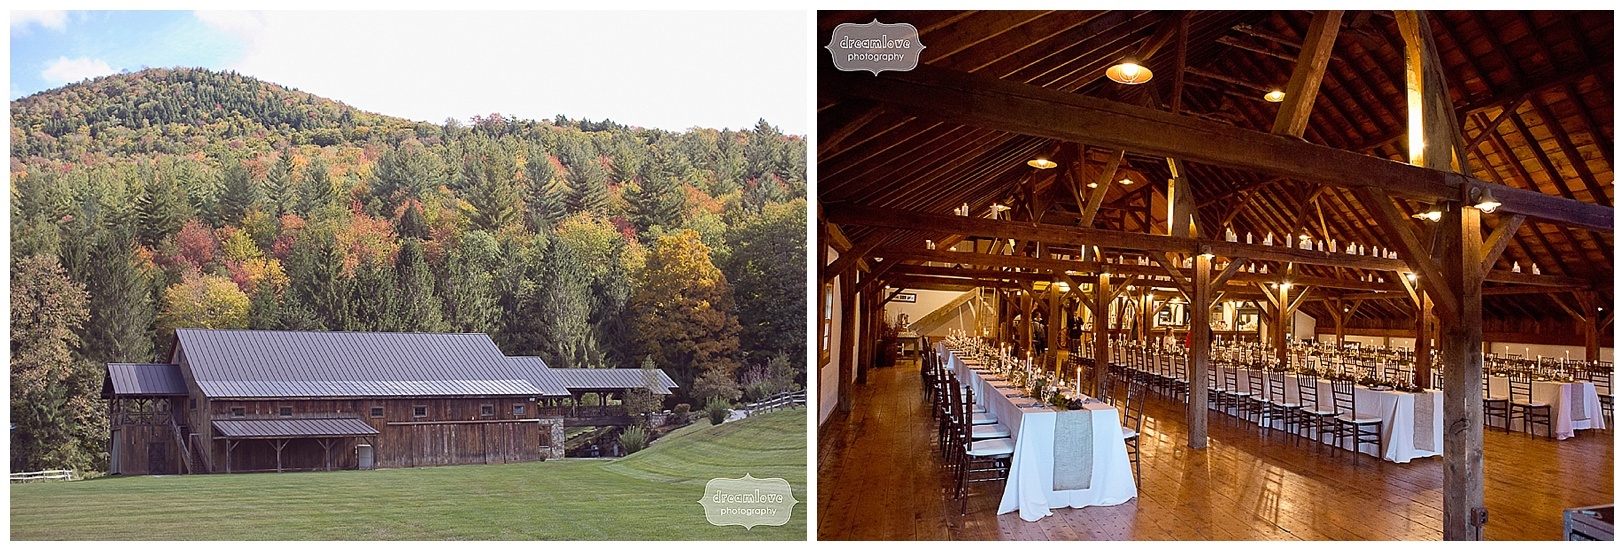 Riverside_Vermont_Wedding_Venue_0104